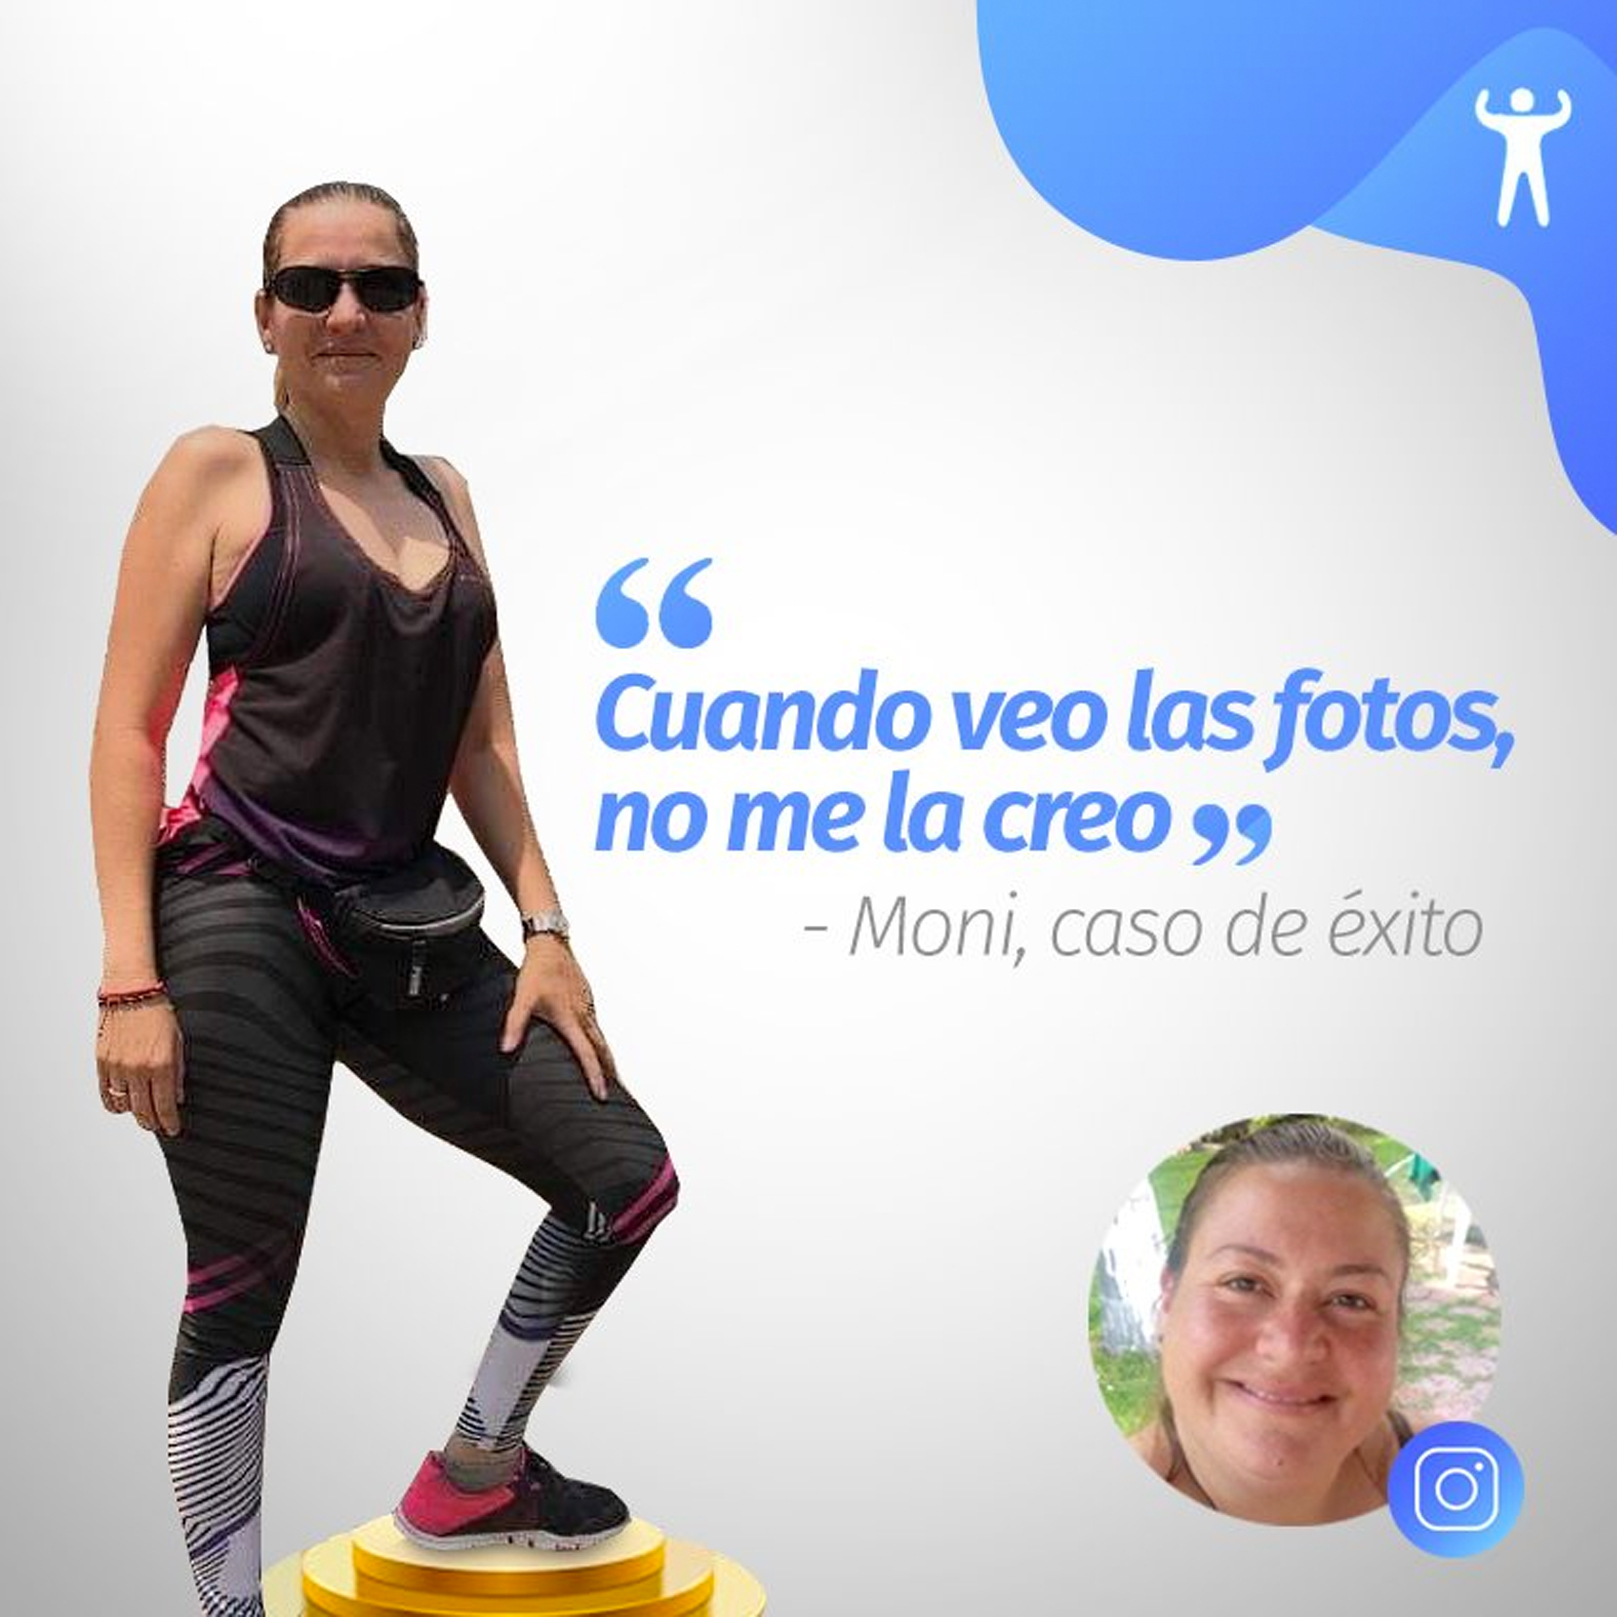 //defeatobesity.mx/wp-content/uploads/2019/06/moni.jpg